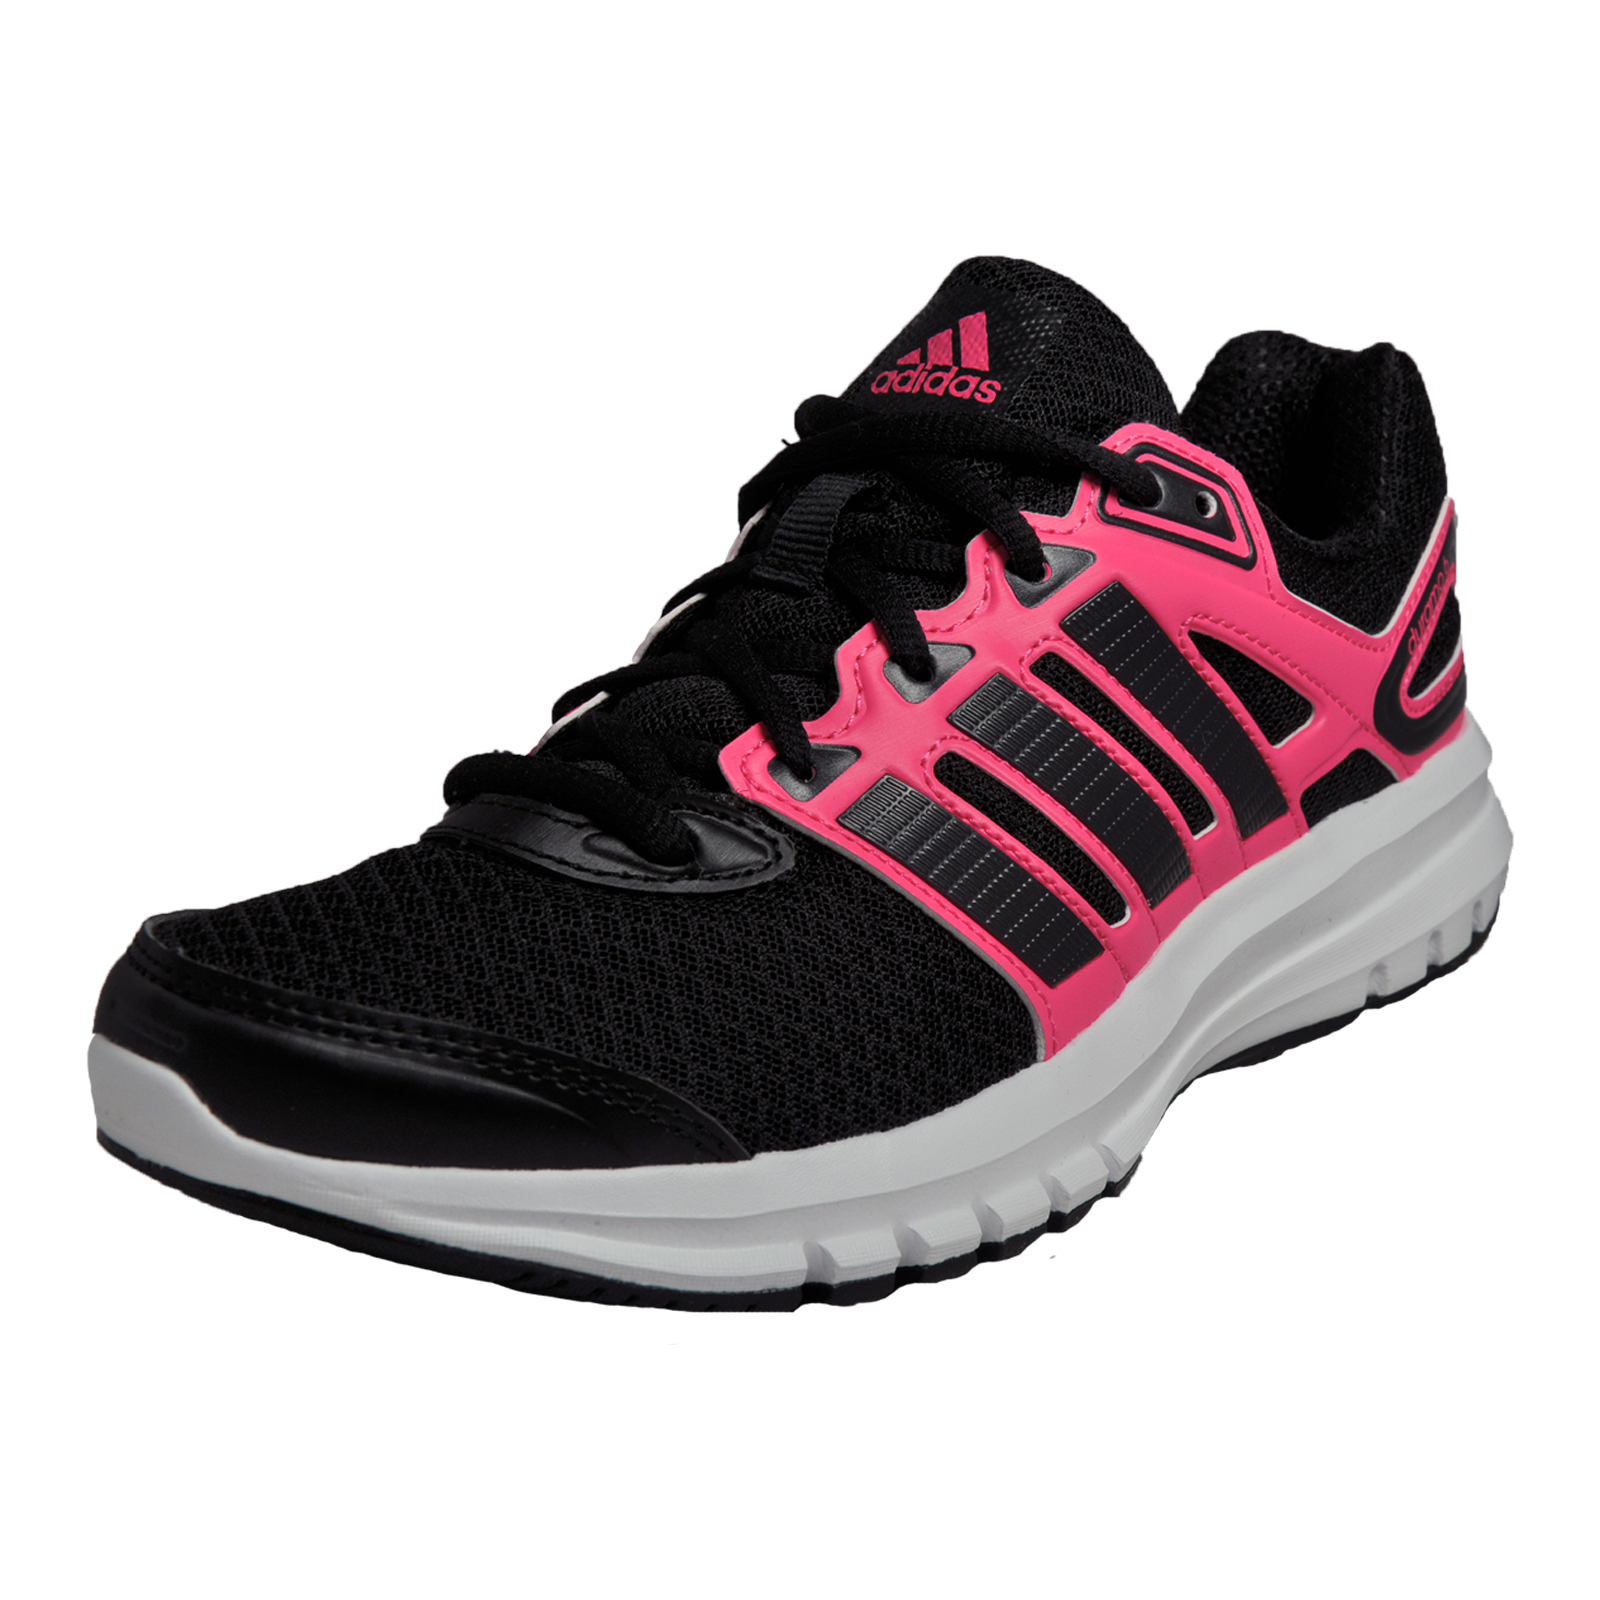 Adidas Duramo 6 Womens Running Shoes Fitness Gym Workout Trainers Black | EBay